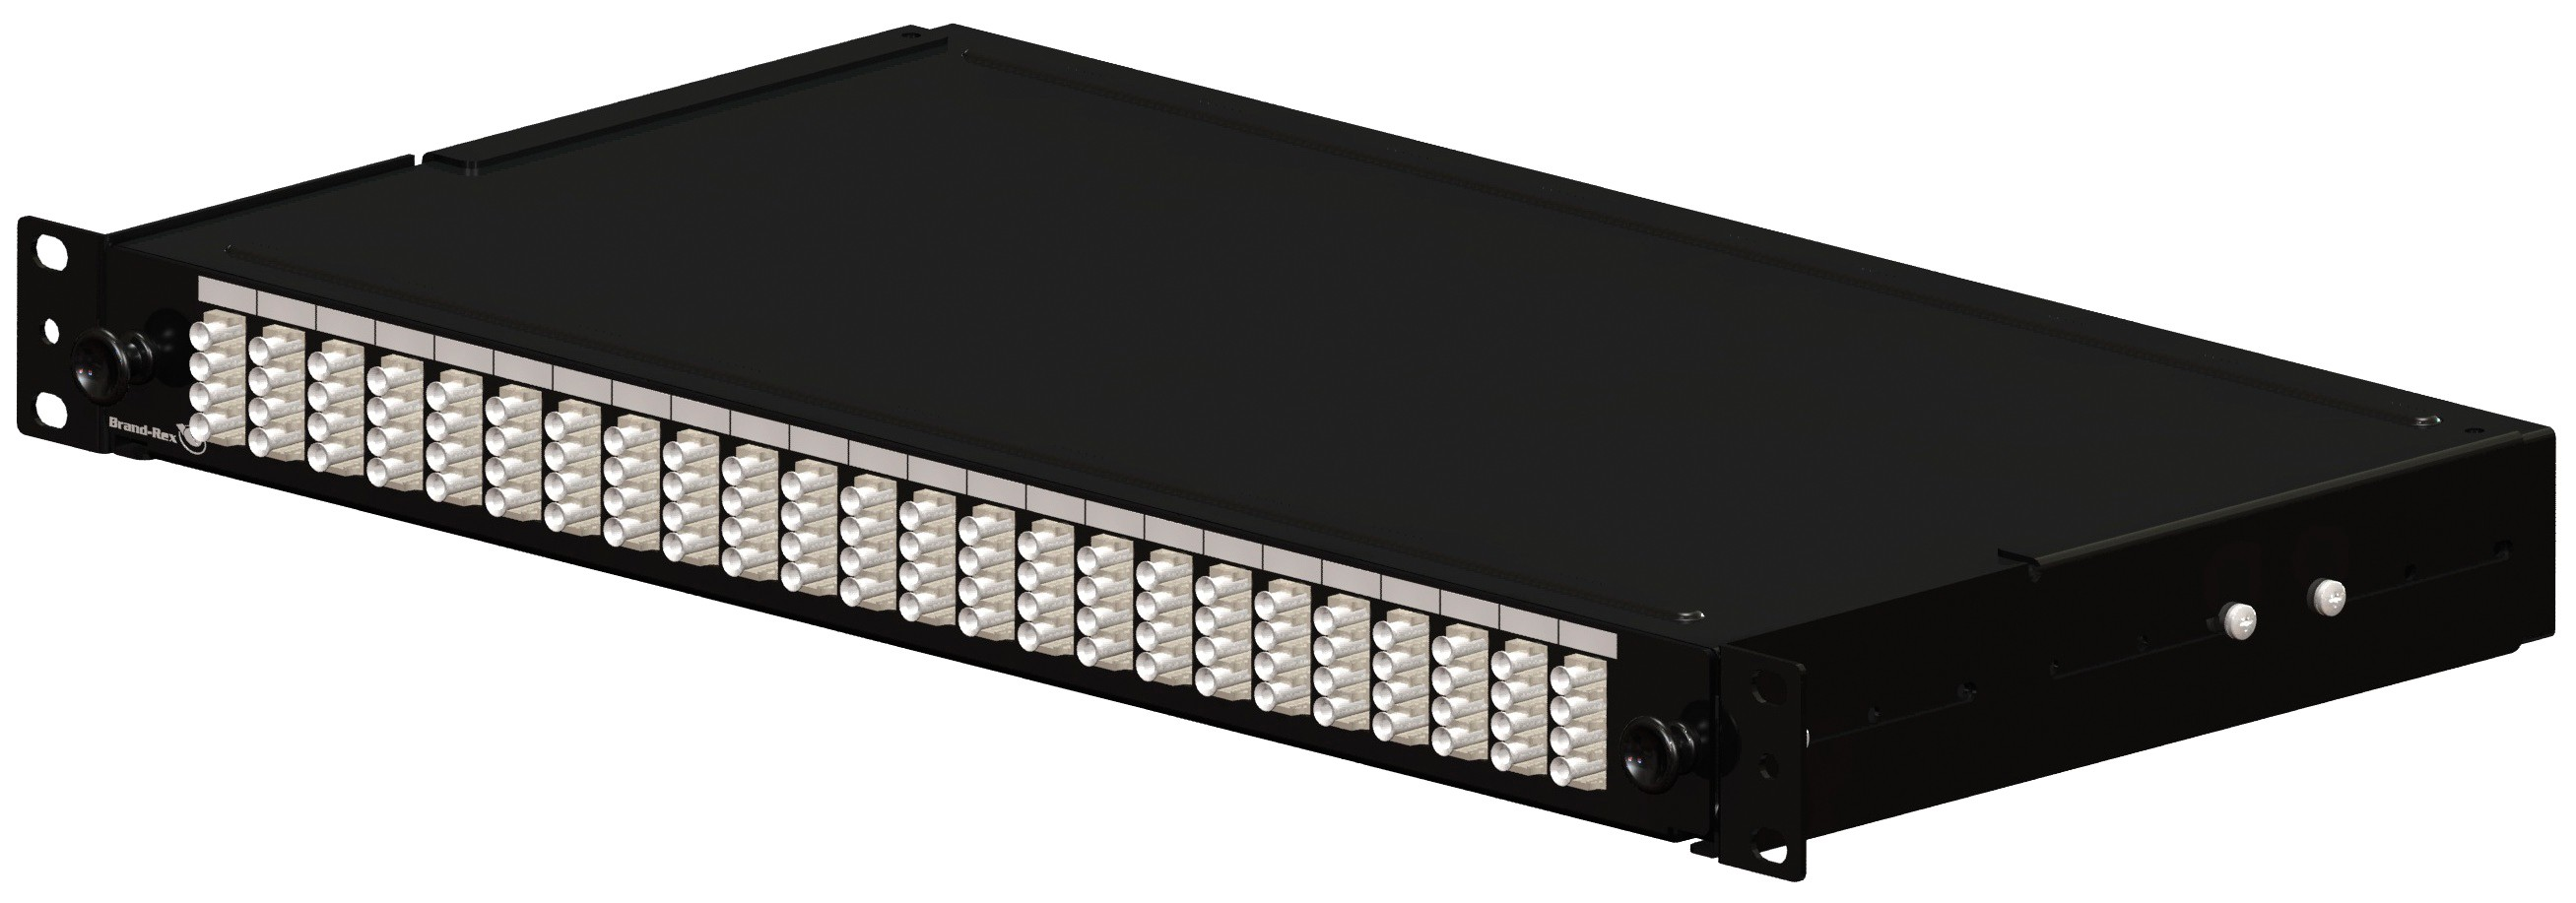 Brand-Rex Optical Panel loaded with 24 SC Simplex Singlemode adapters